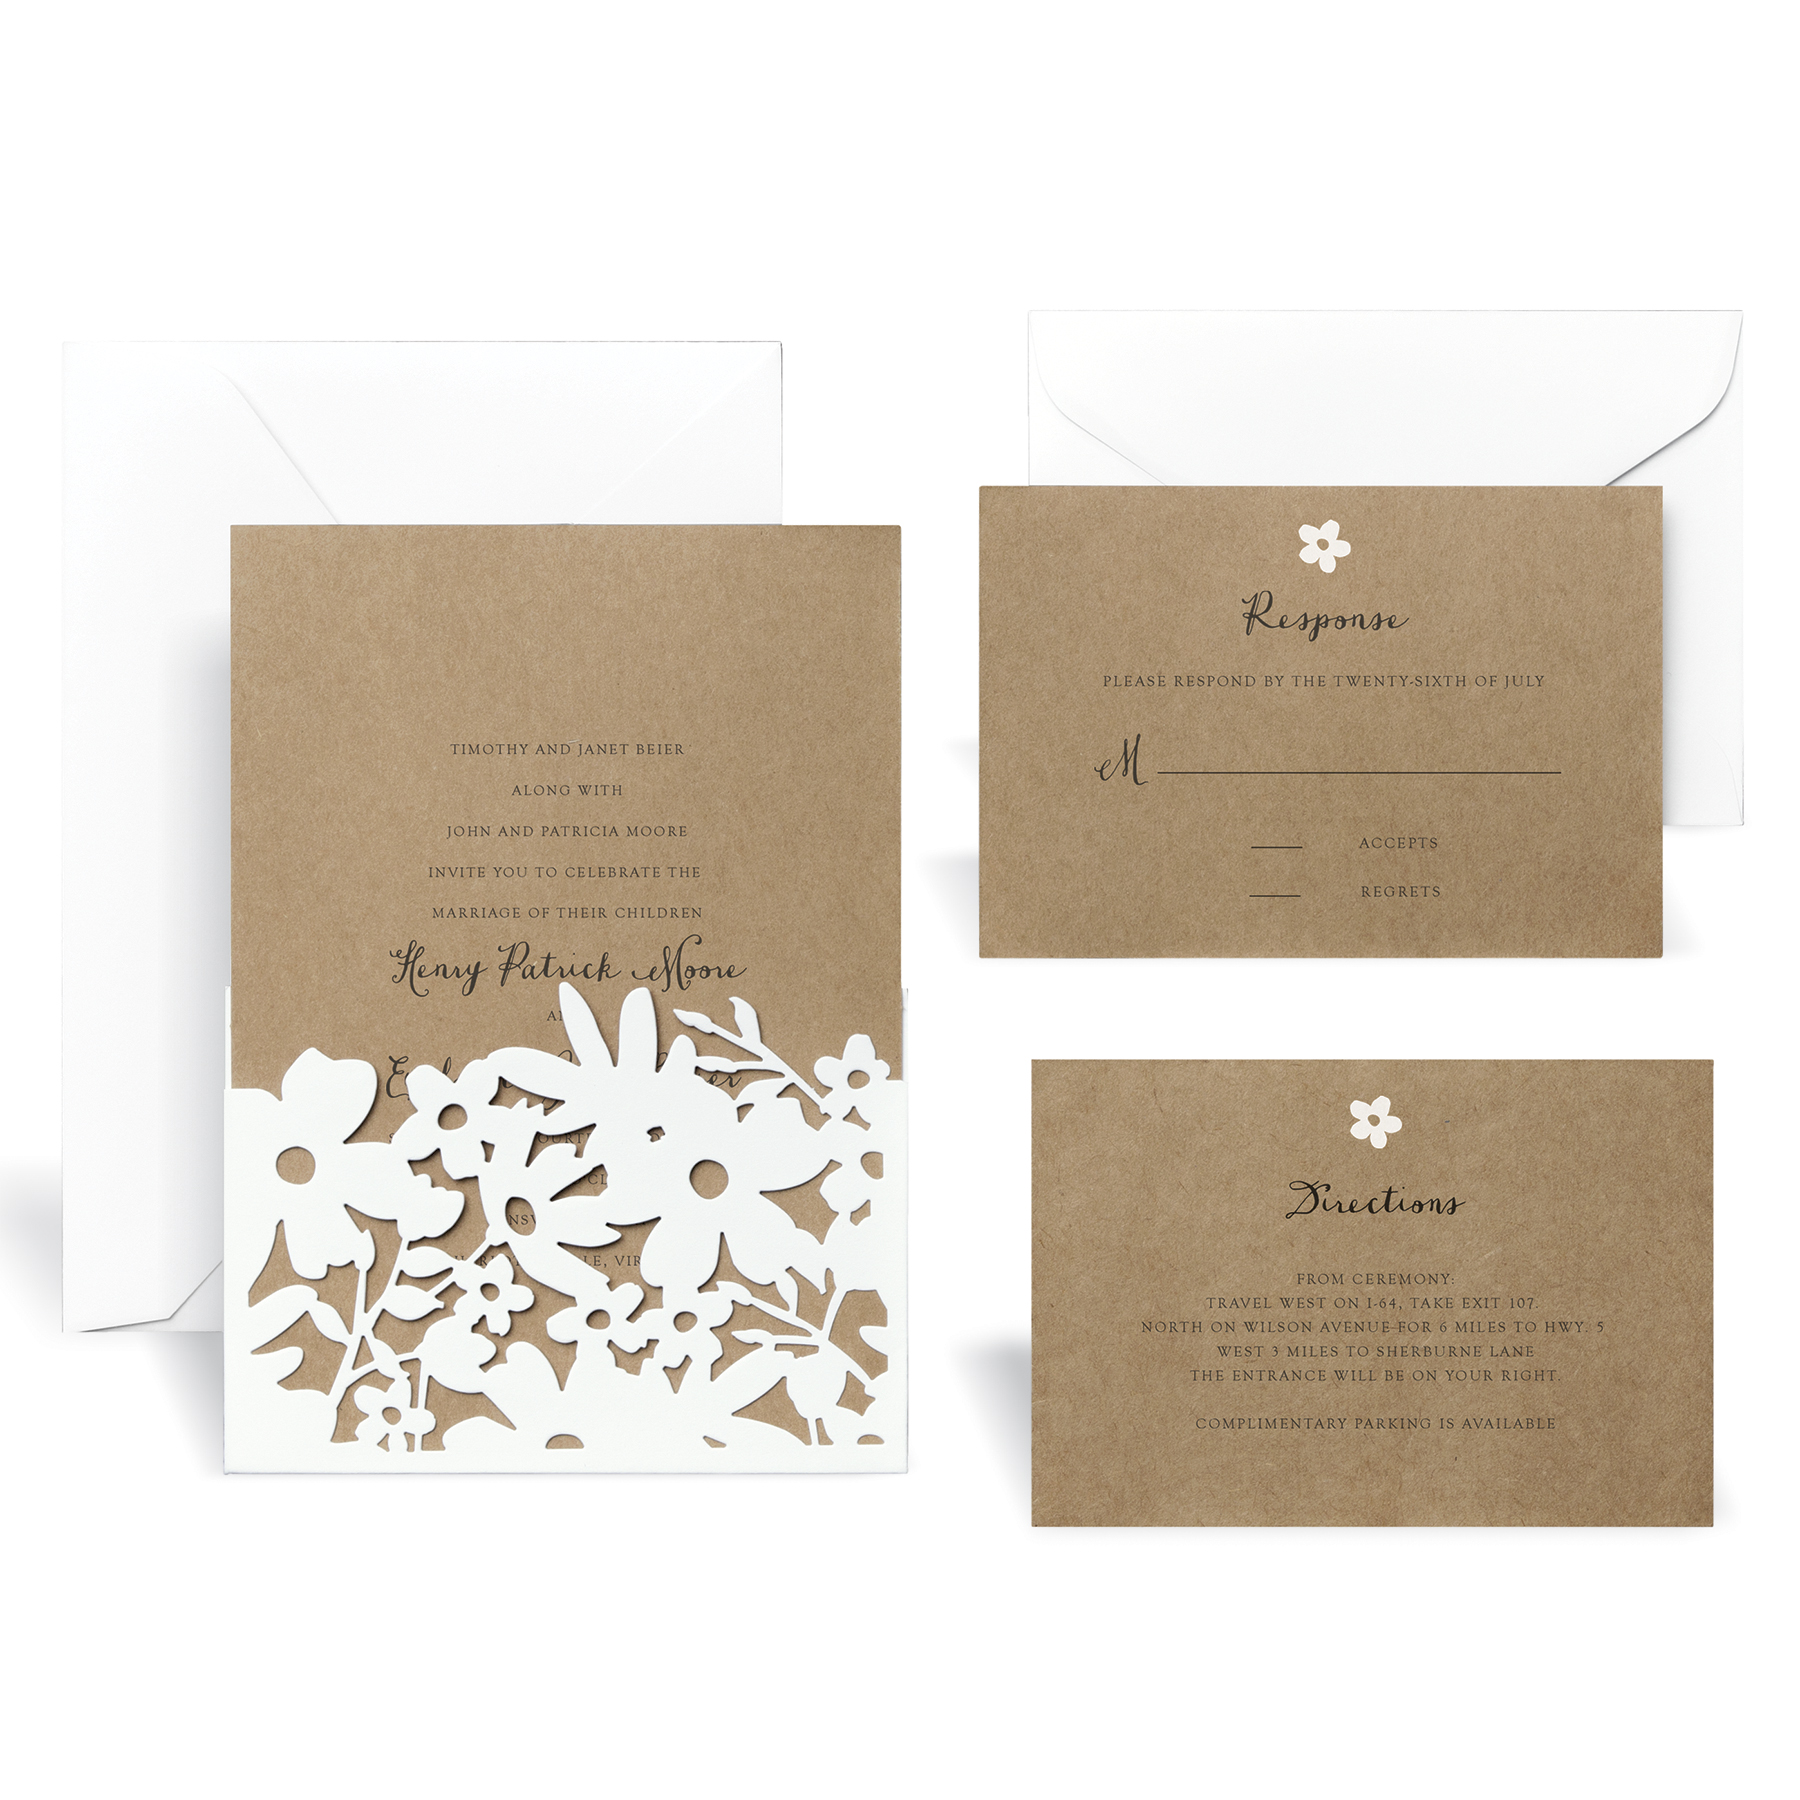 Find the LaserCut WrapIn Floral Wedding Invitation Kit By